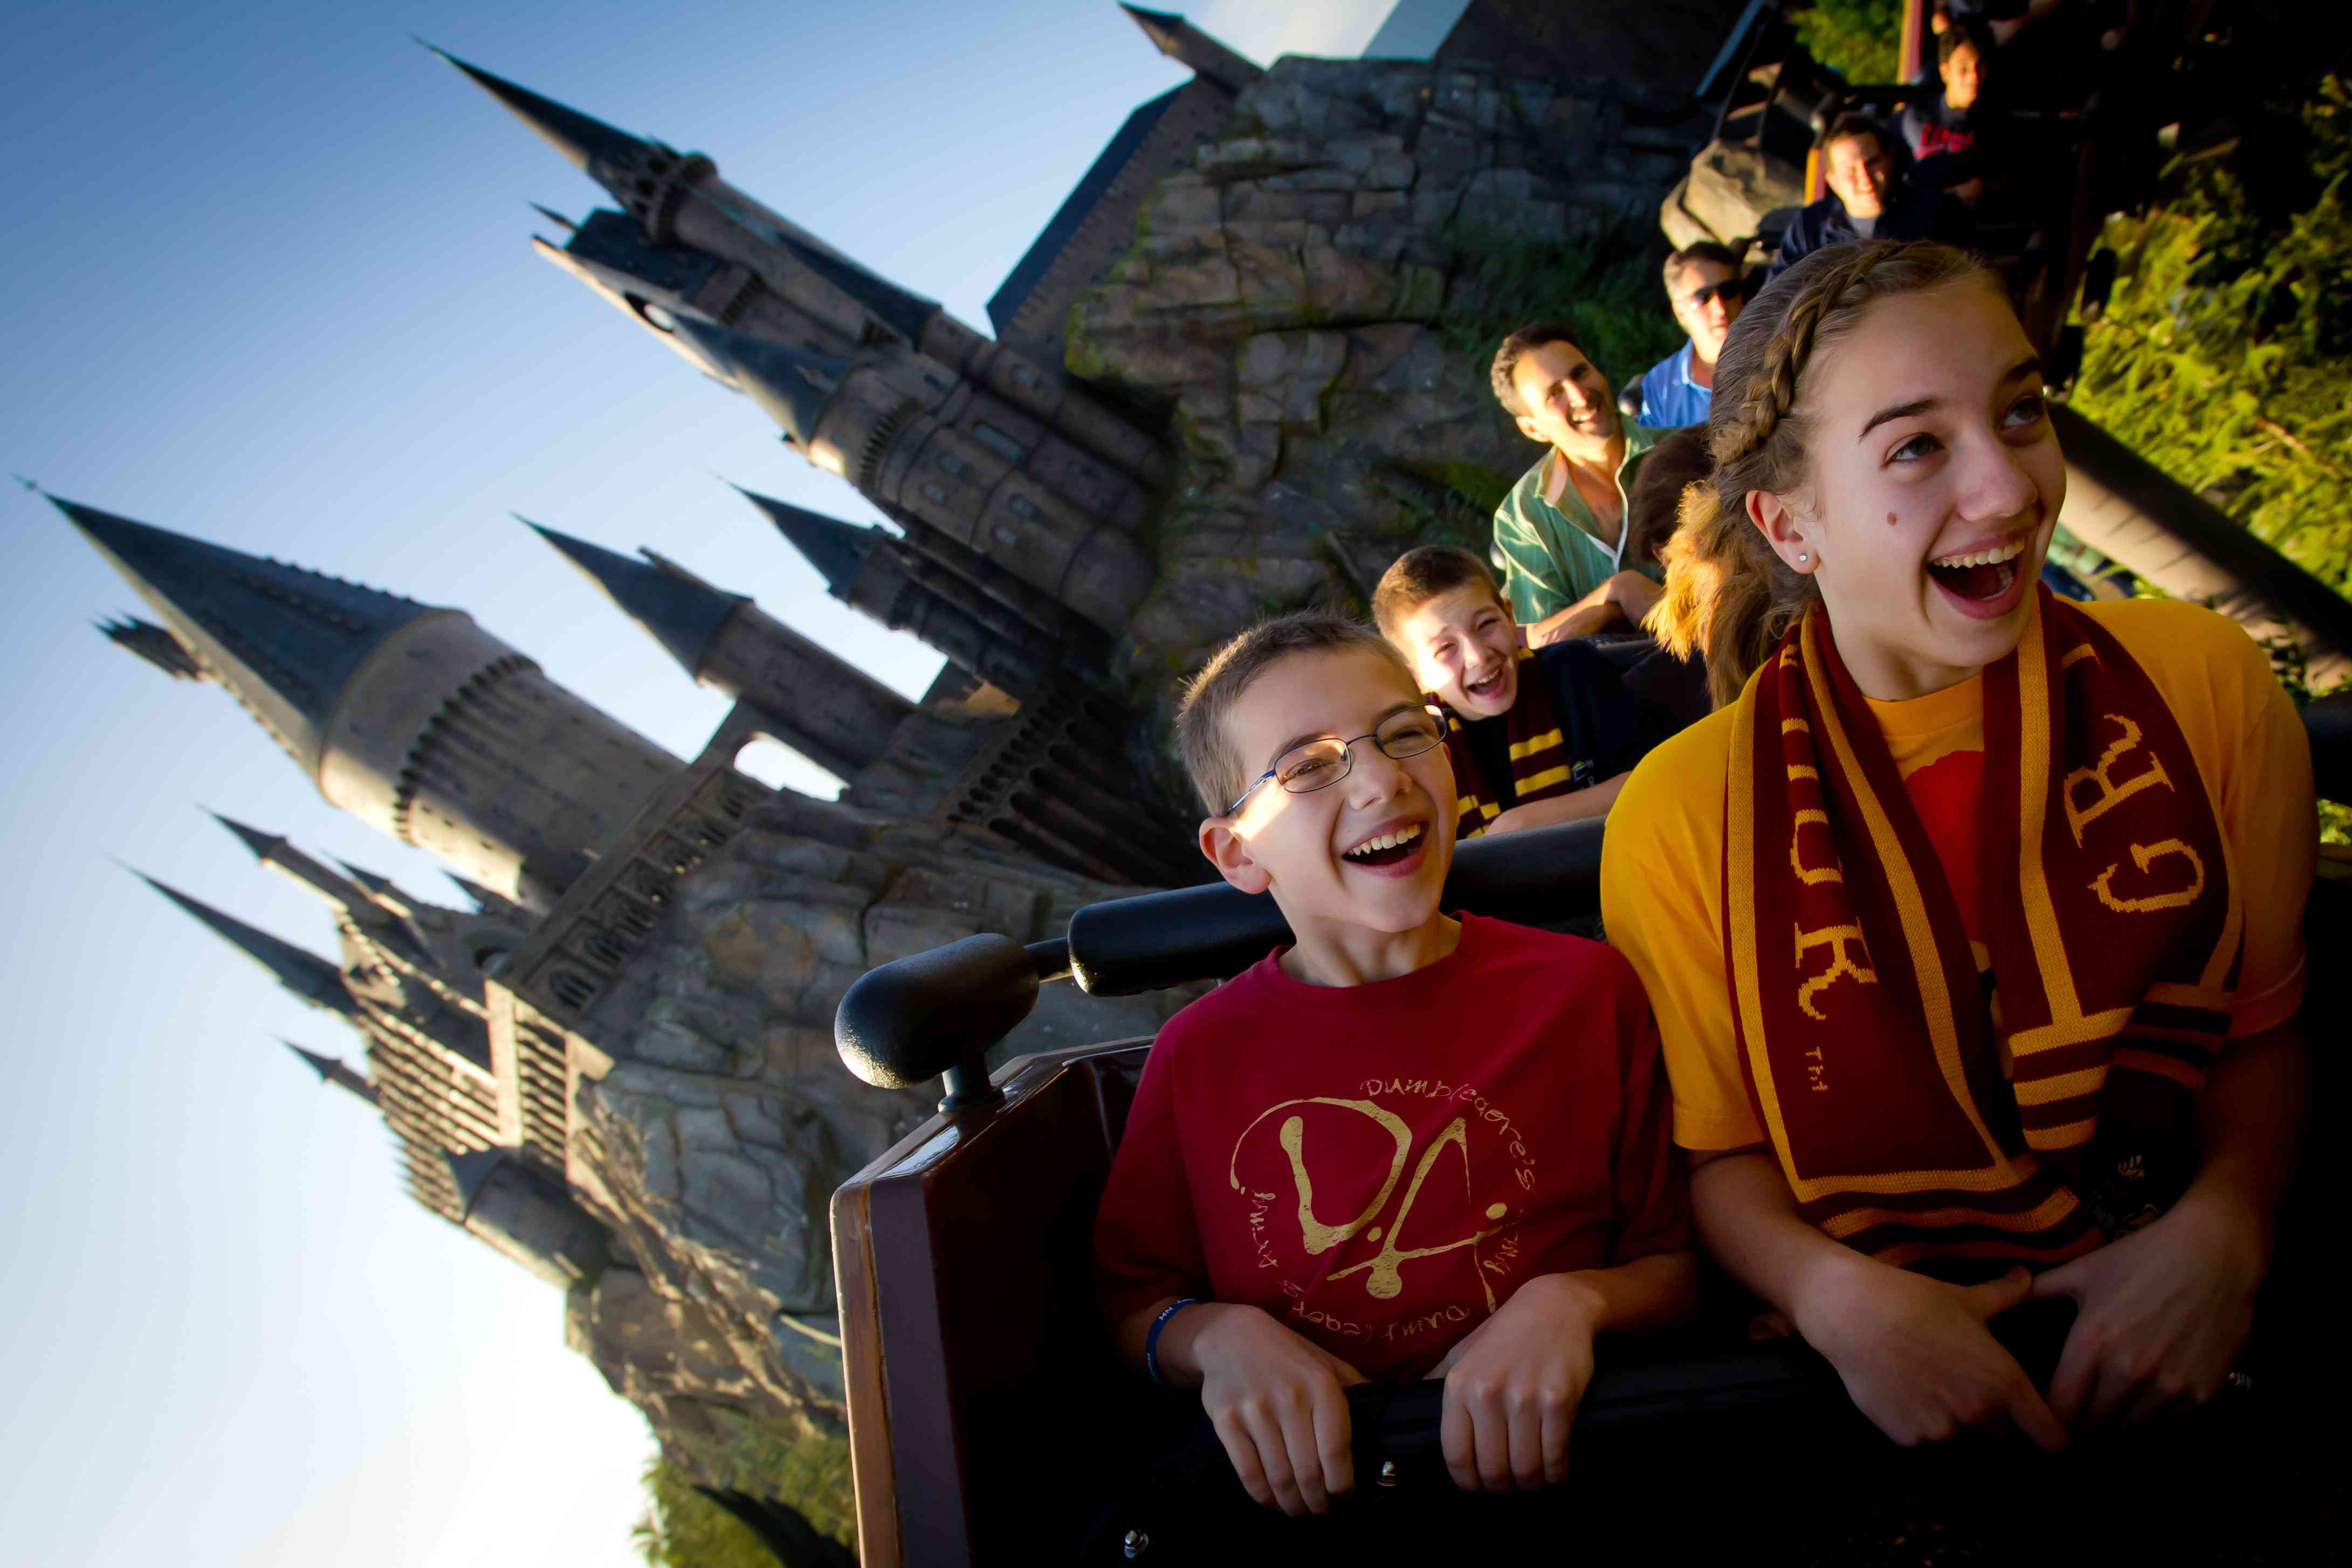 Flight of the Hippogriff coaster at Universal Orlando